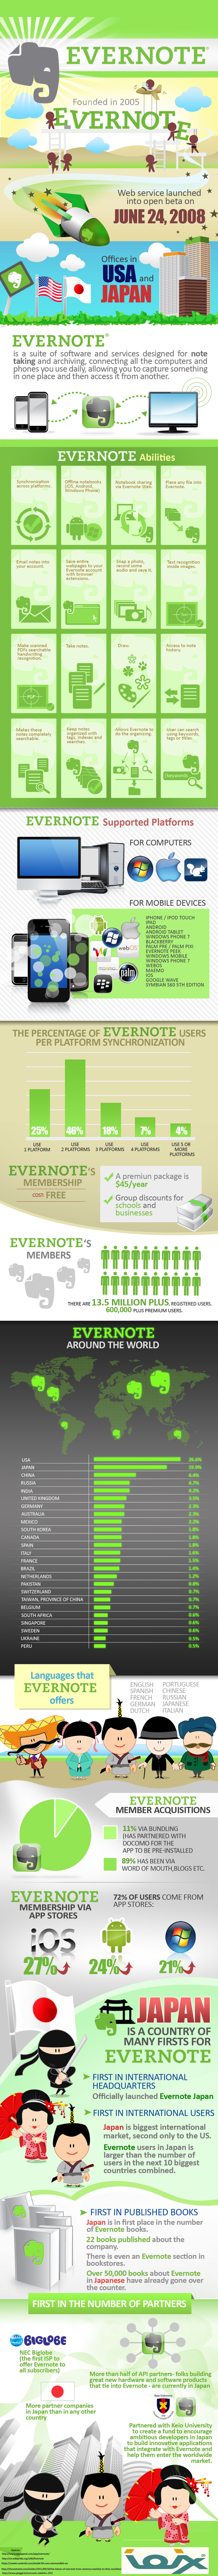 Evernotes MAIN IG Design Final ioix Evernote: An Infographic